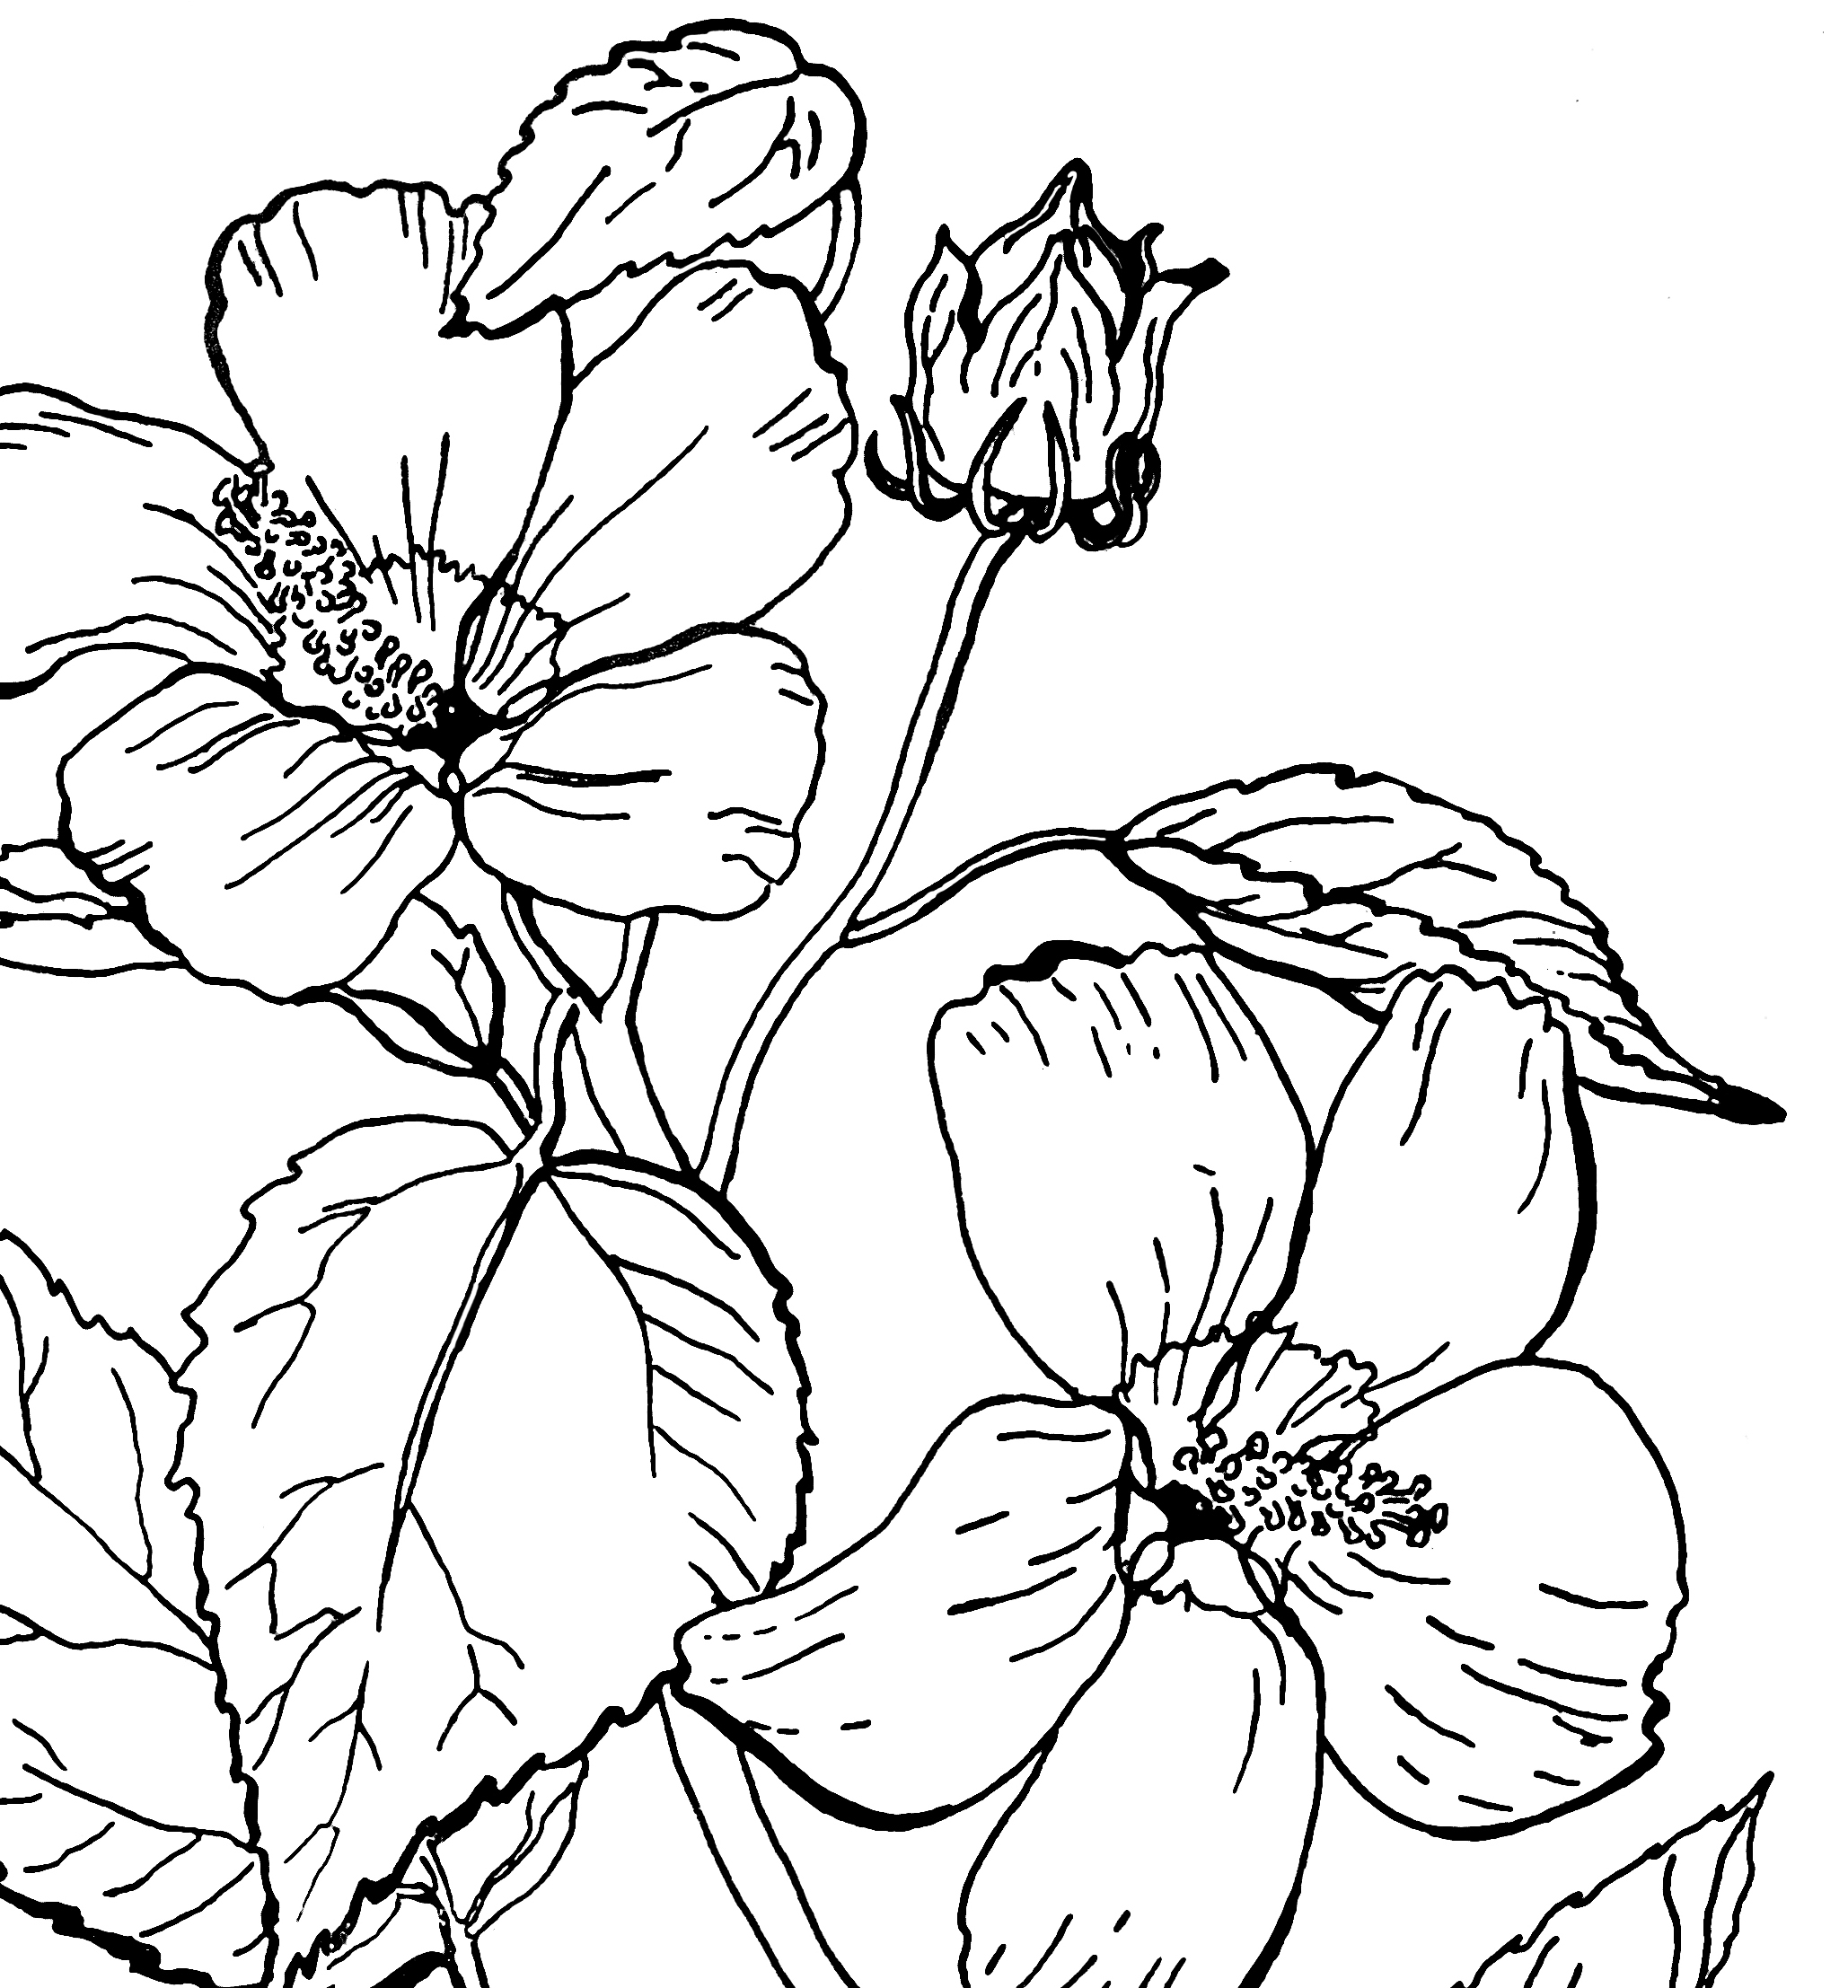 rose colouring pages free printable roses coloring pages for kids pages rose colouring